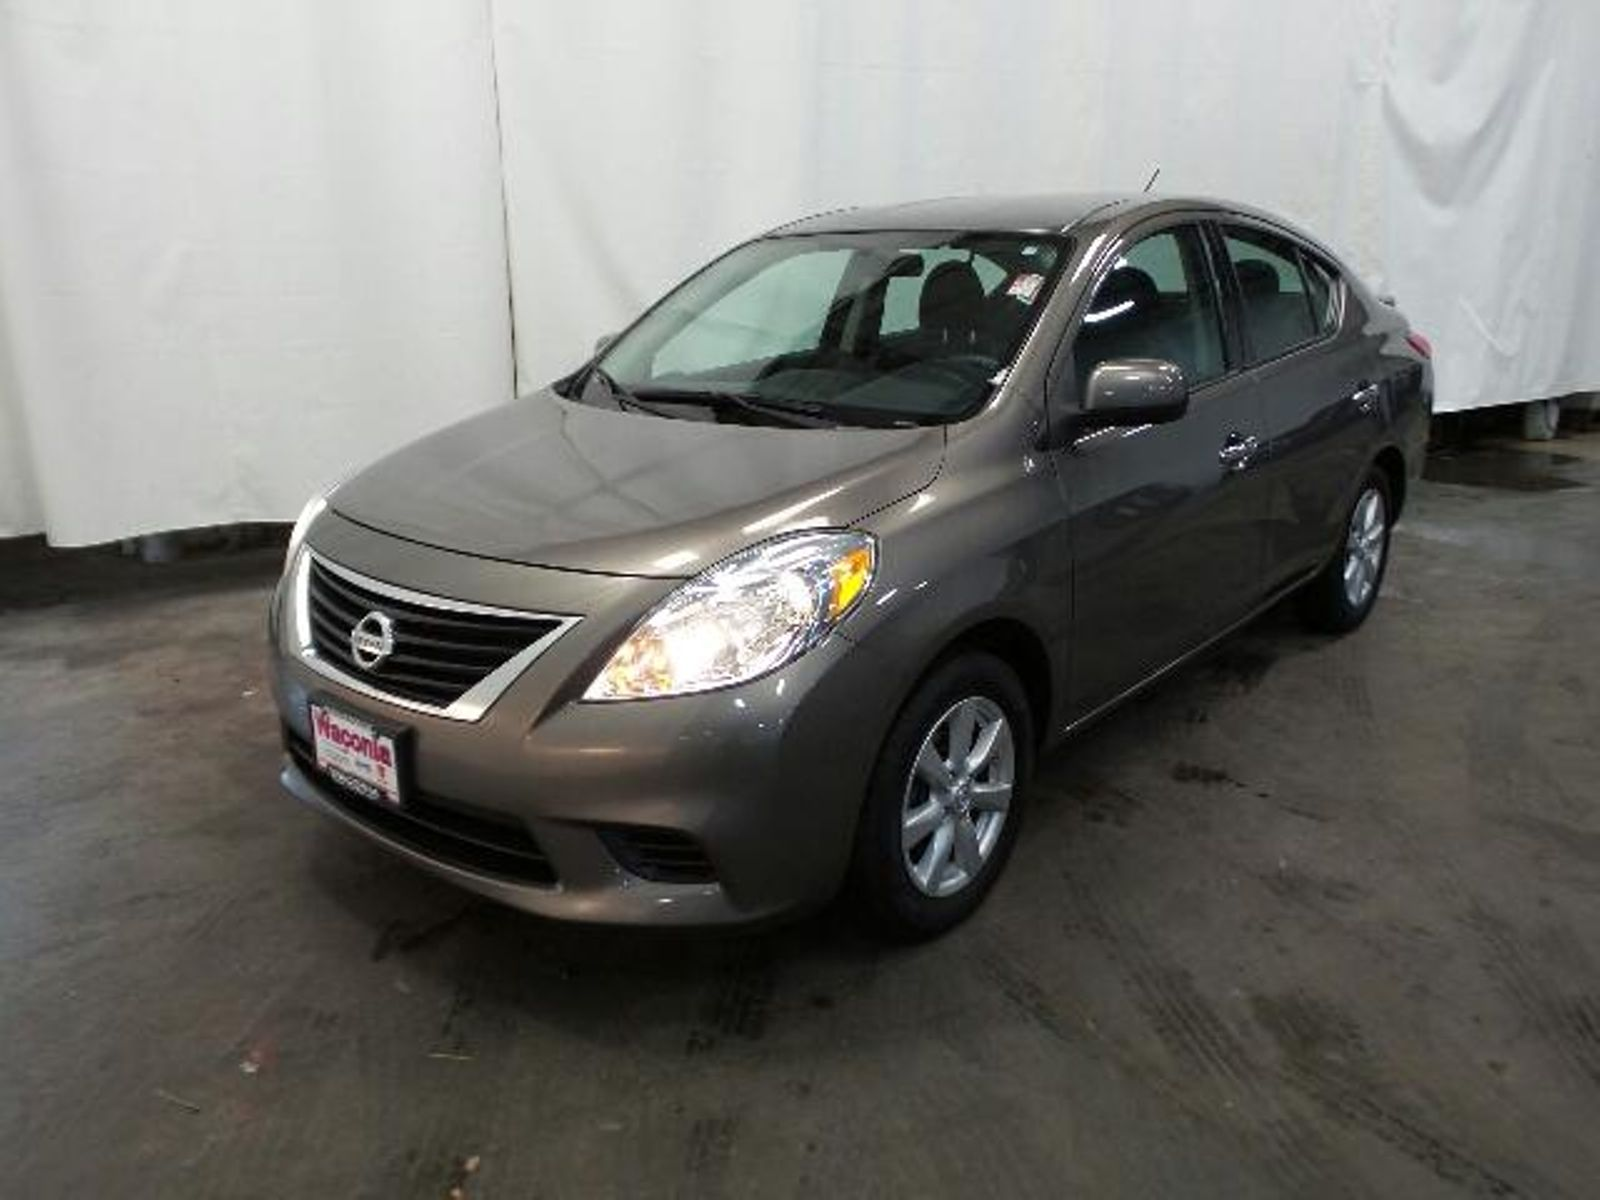 inventory make fredericton versa sv nissan used vehicle note en model name id in